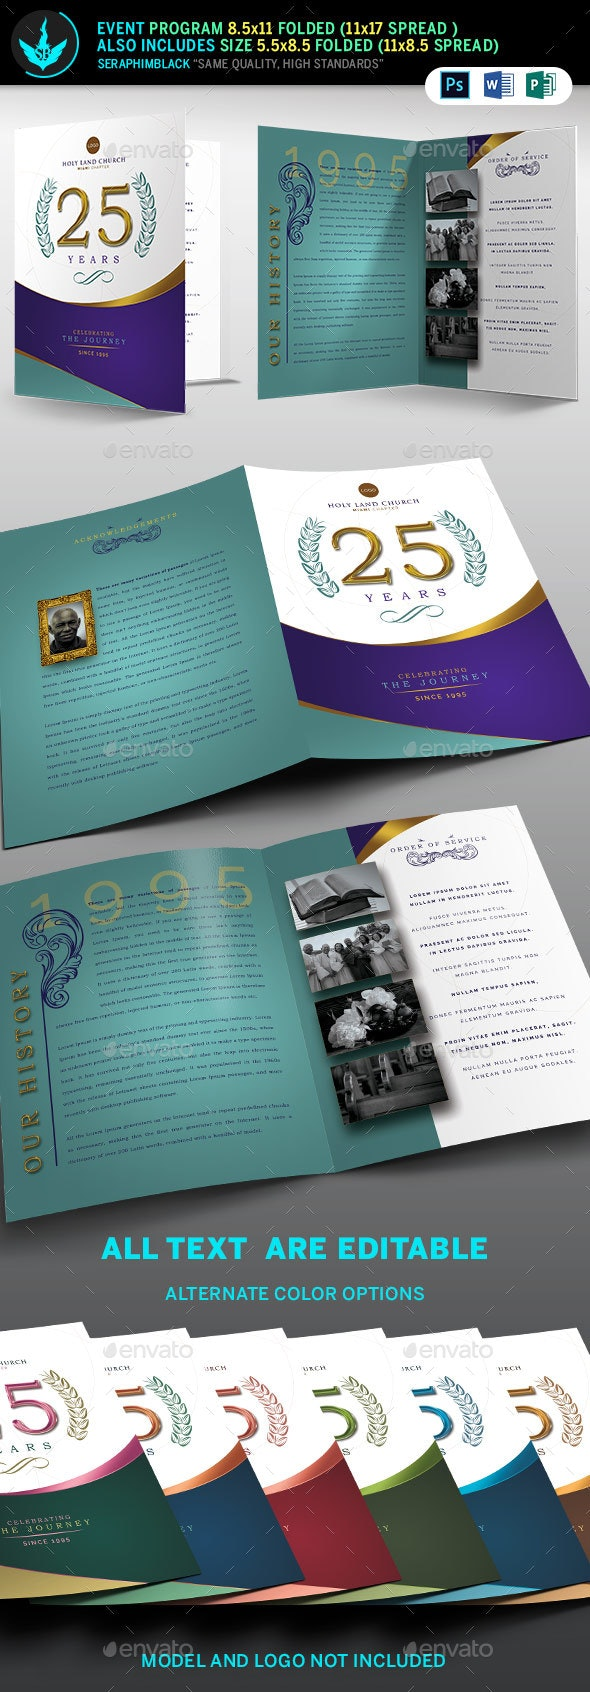 Regal Gold Lavender plus Teal Church Anniversary Program Template - Informational Brochures